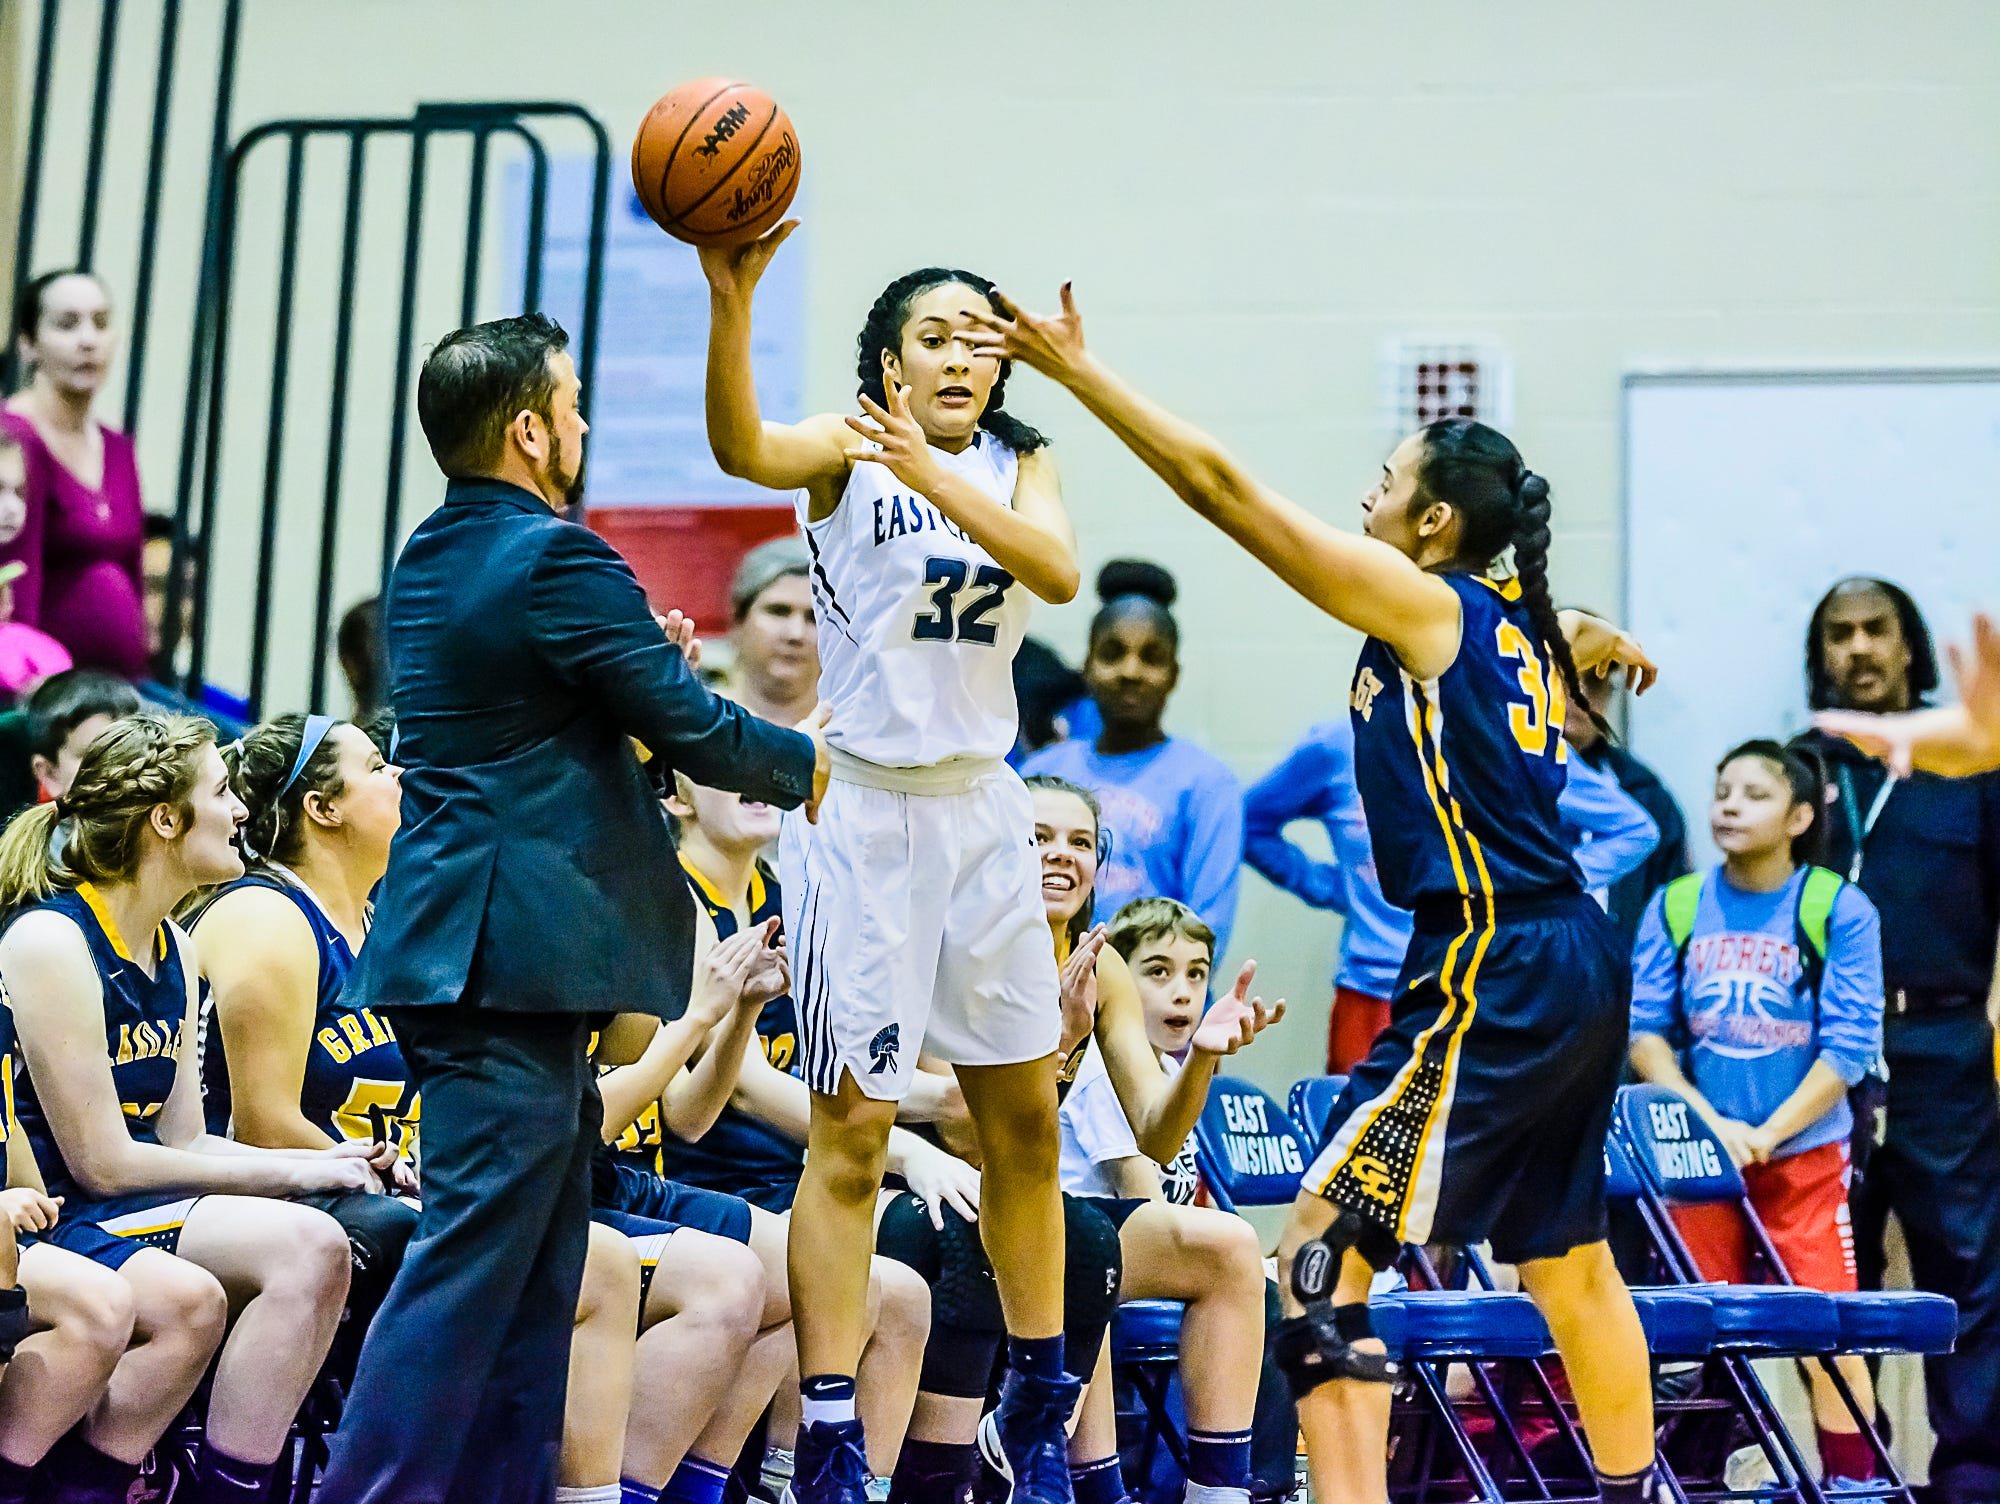 Jade Ayers ,right, of Grand Ledge pressures Aaliyah Nye ,32, of East Lansing as she inbounds the ball in front of the Grand Ledge bench in the last minute of their district semifinal and Grand Ledge trailing by 10 Wednesday March 1, 2017 at East Lansing High School. KEVIN W. FOWLER PHOTO